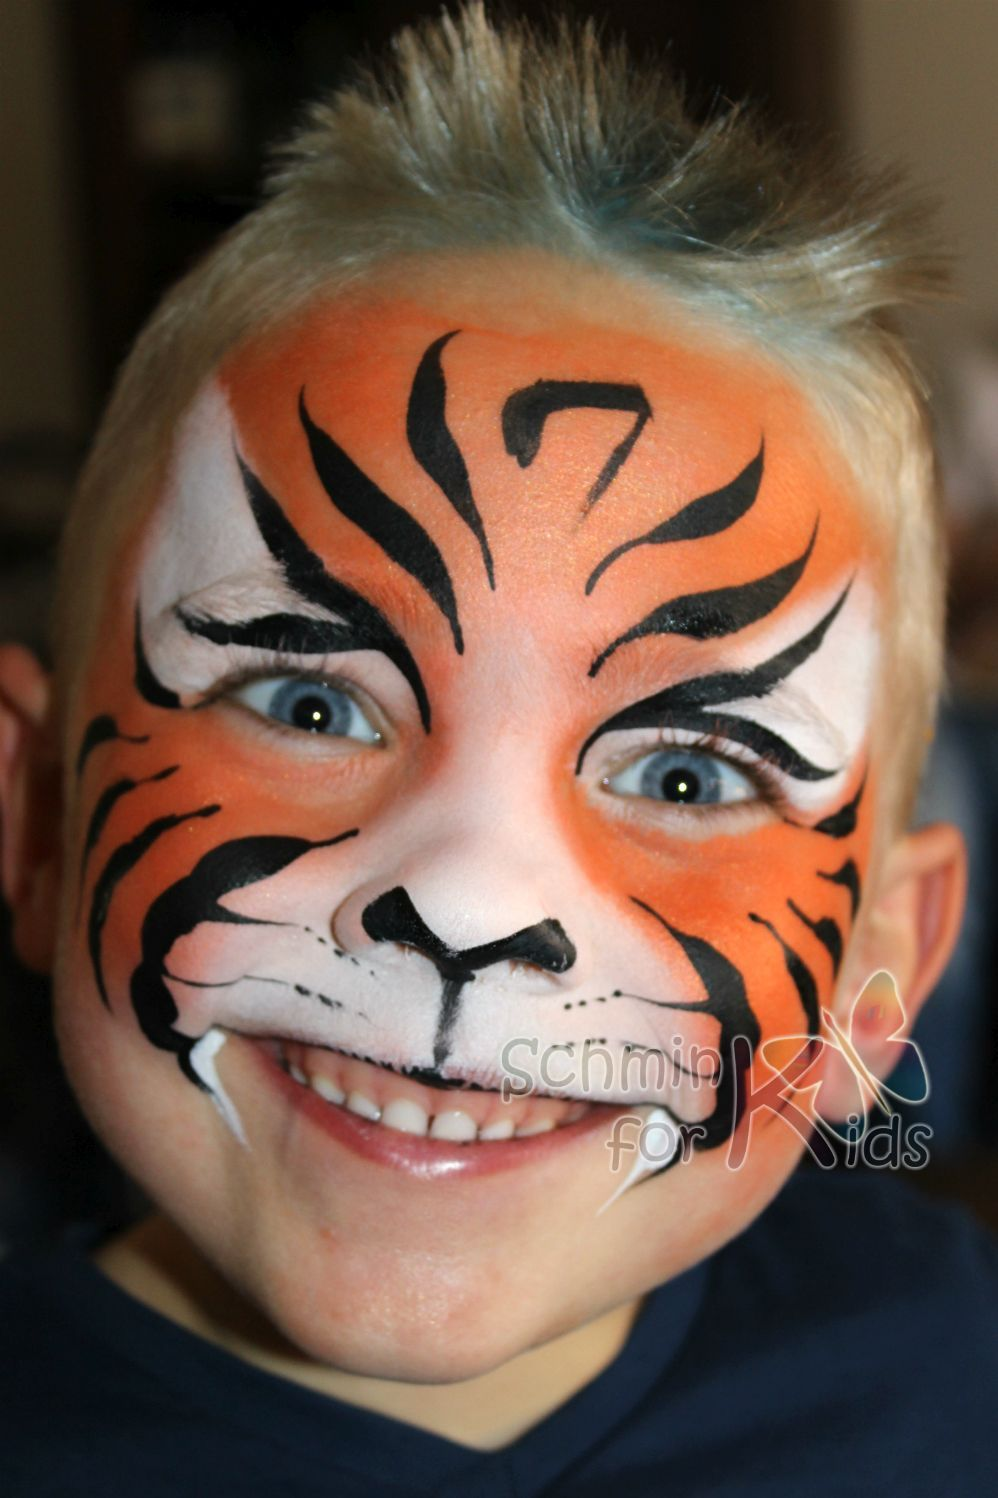 tiger schmink for kids facepaint schminken tijger face paint pinterest schminken. Black Bedroom Furniture Sets. Home Design Ideas